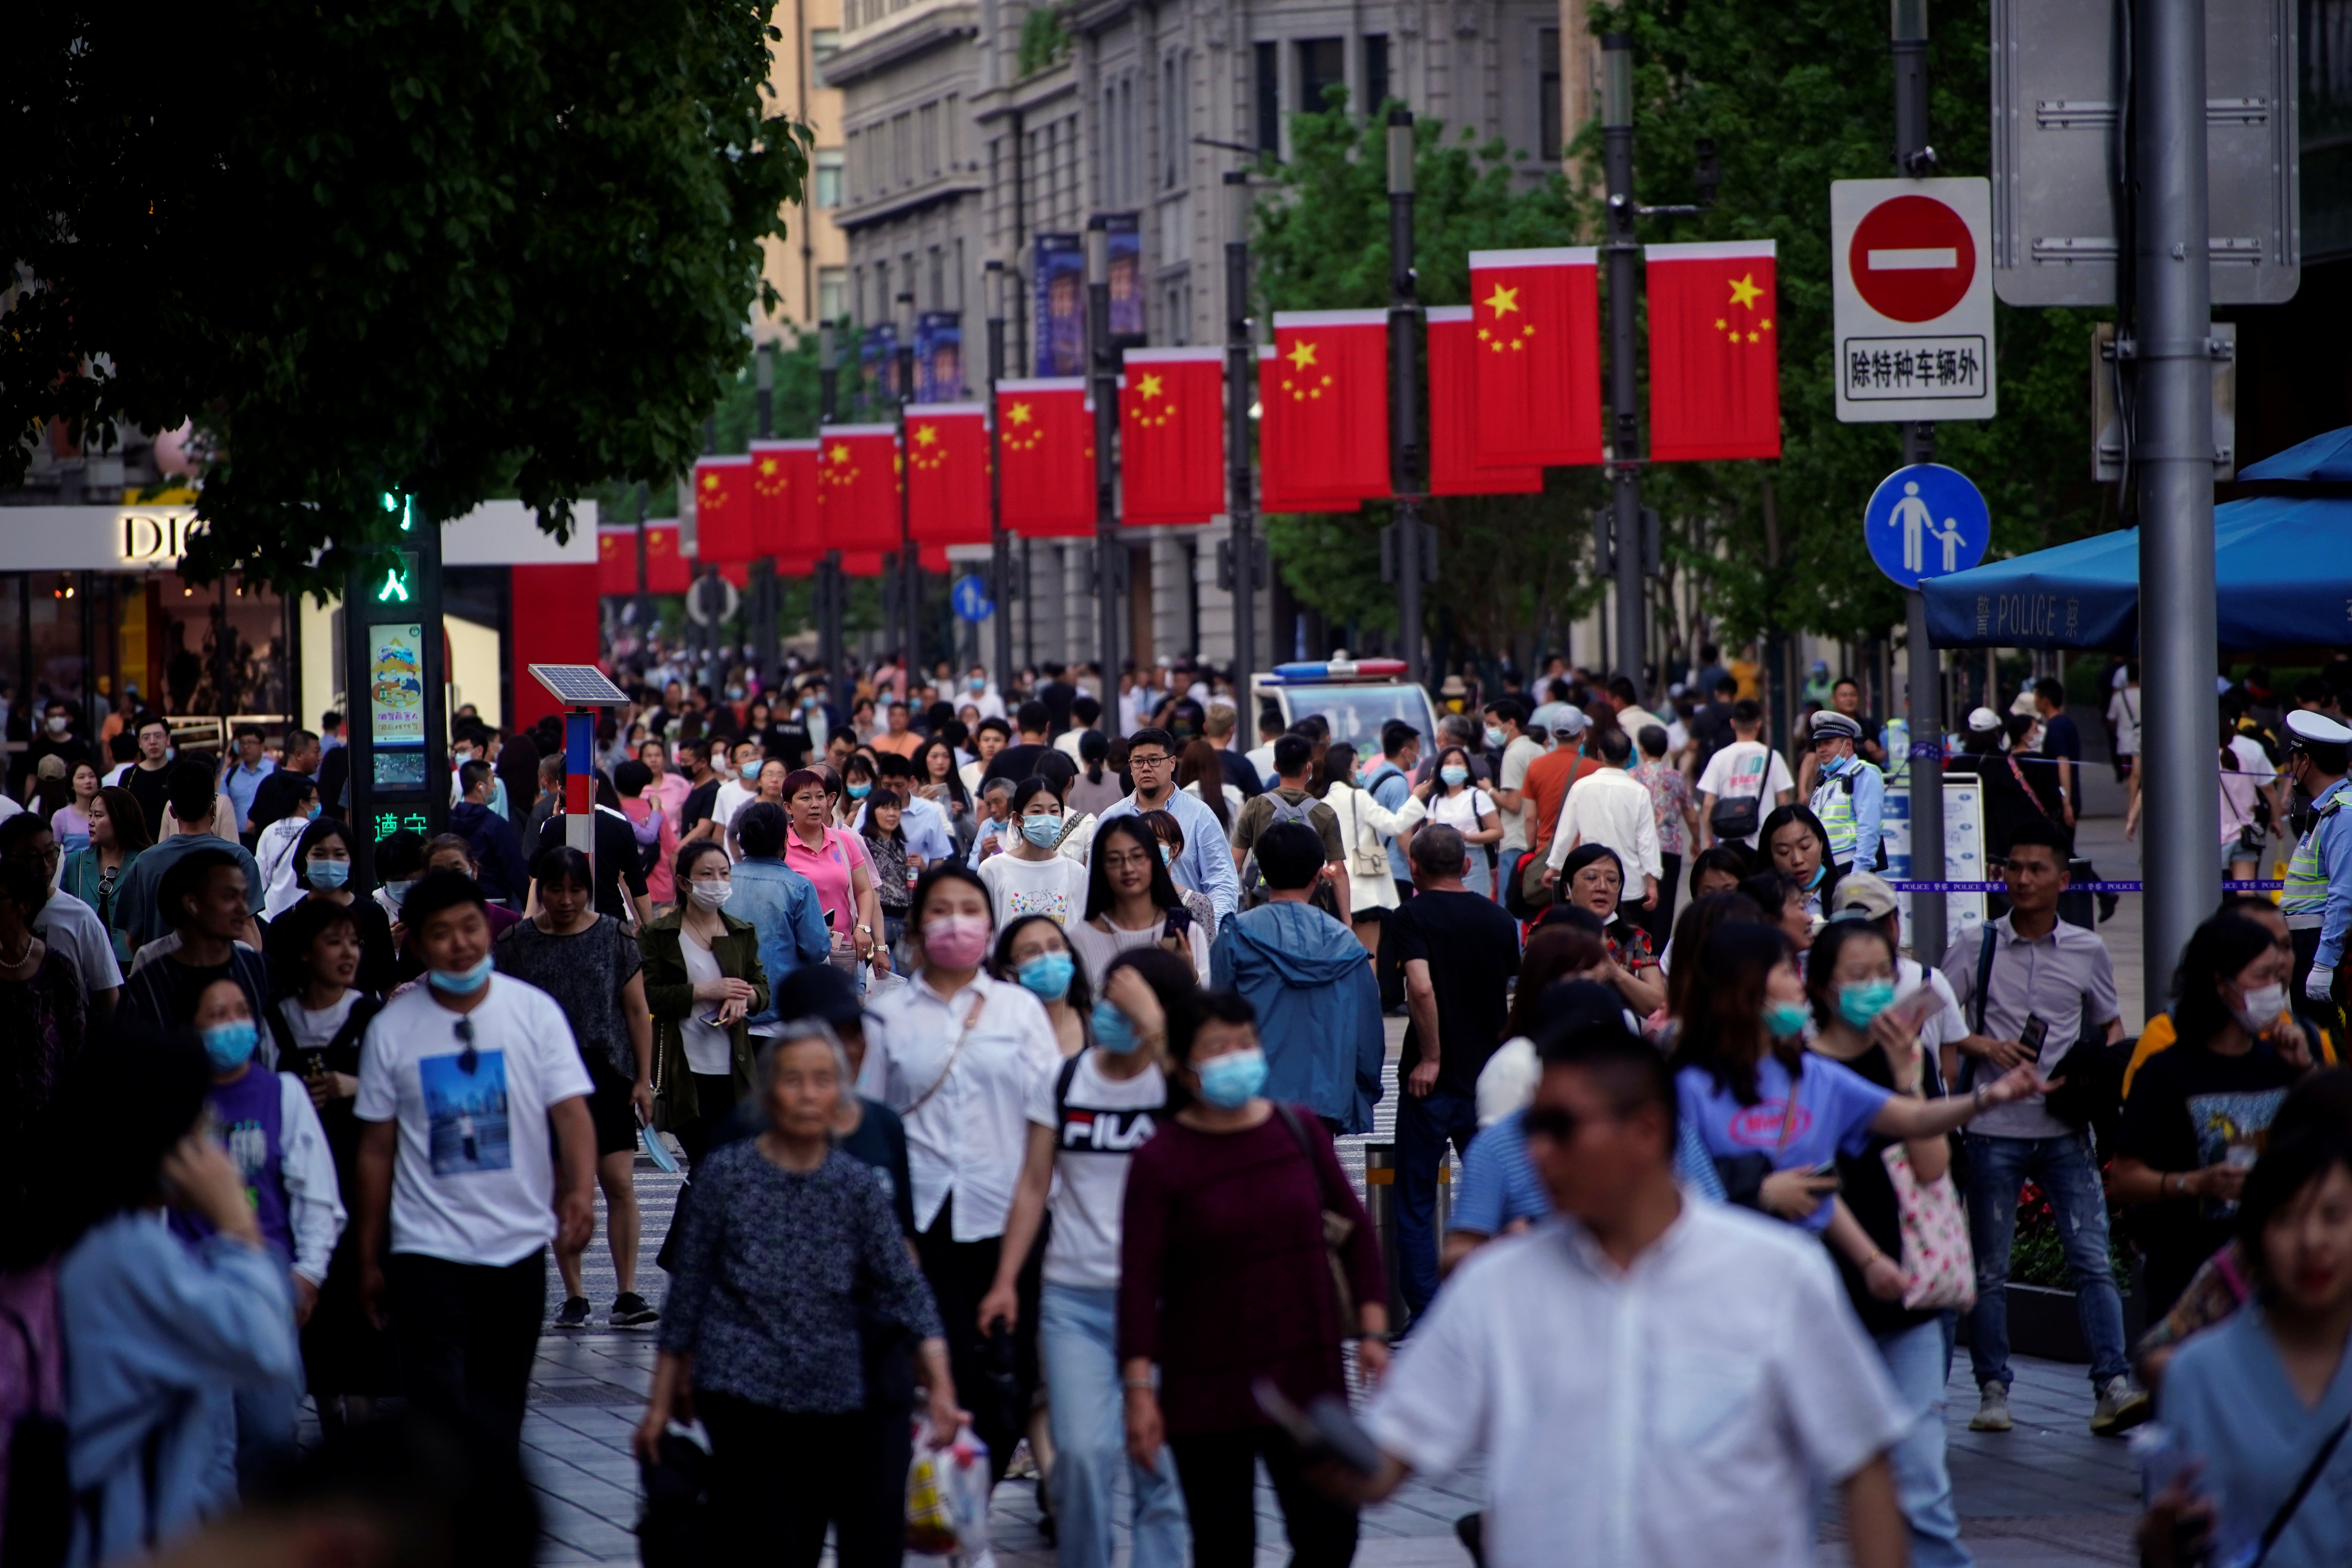 People walk along Nanjing Pedestrian Road, a main shopping area, following the outbreak of the coronavirus disease (COVID-19), in Shanghai, China May 10, 2021. REUTERS/Aly Song